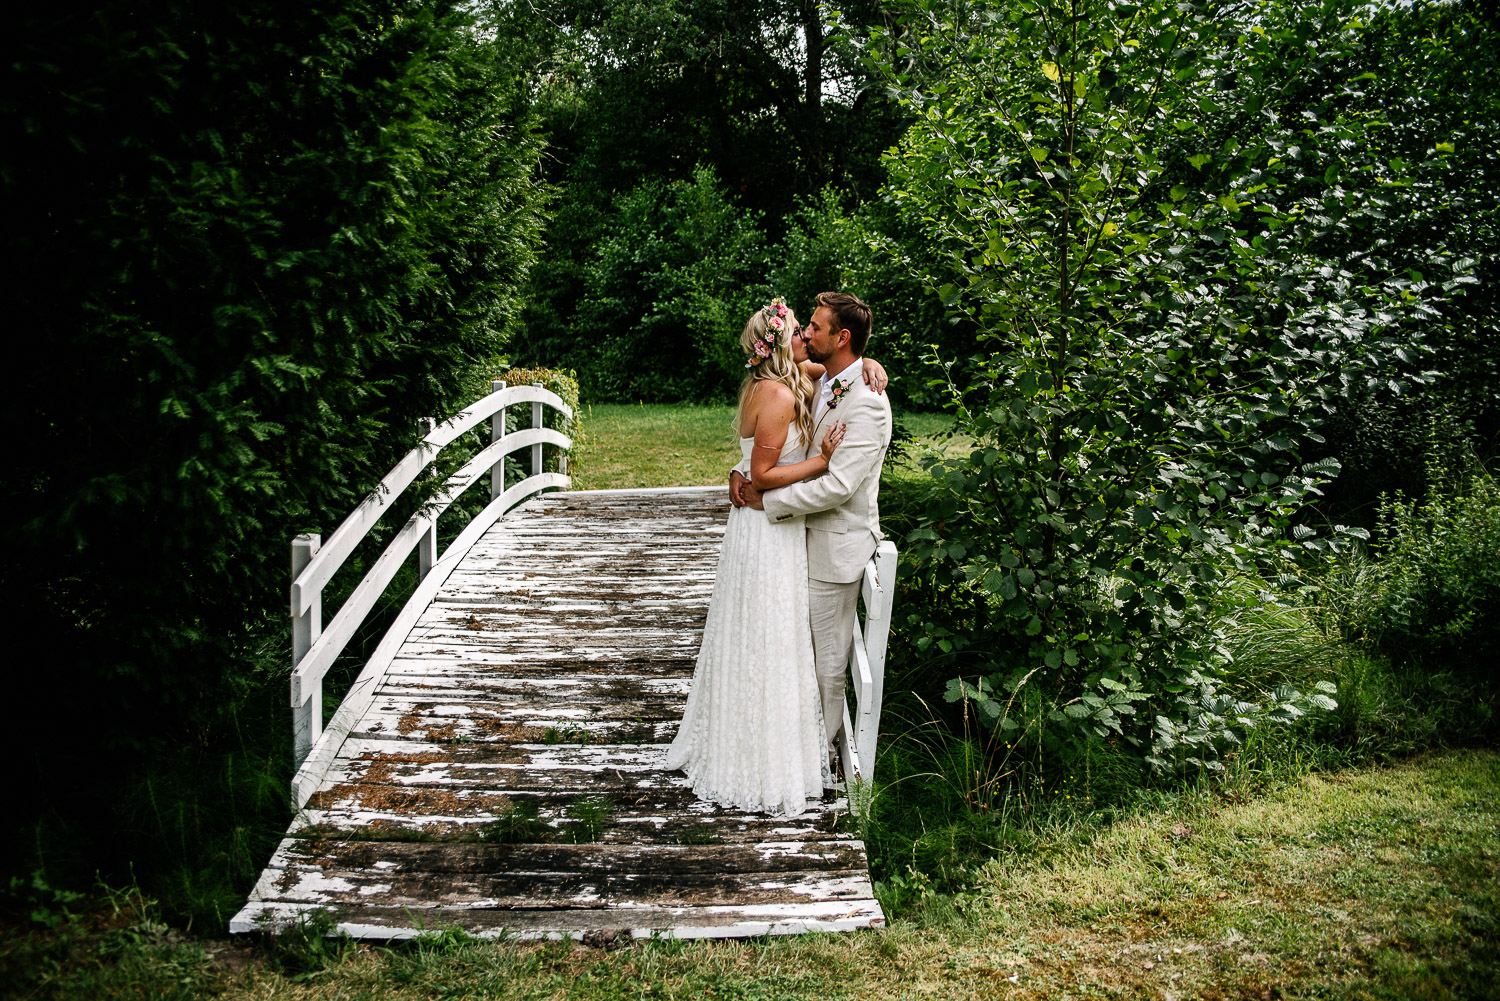 chateau_de_lisse_gers_wedding_katy_webb_photography_france_UK72